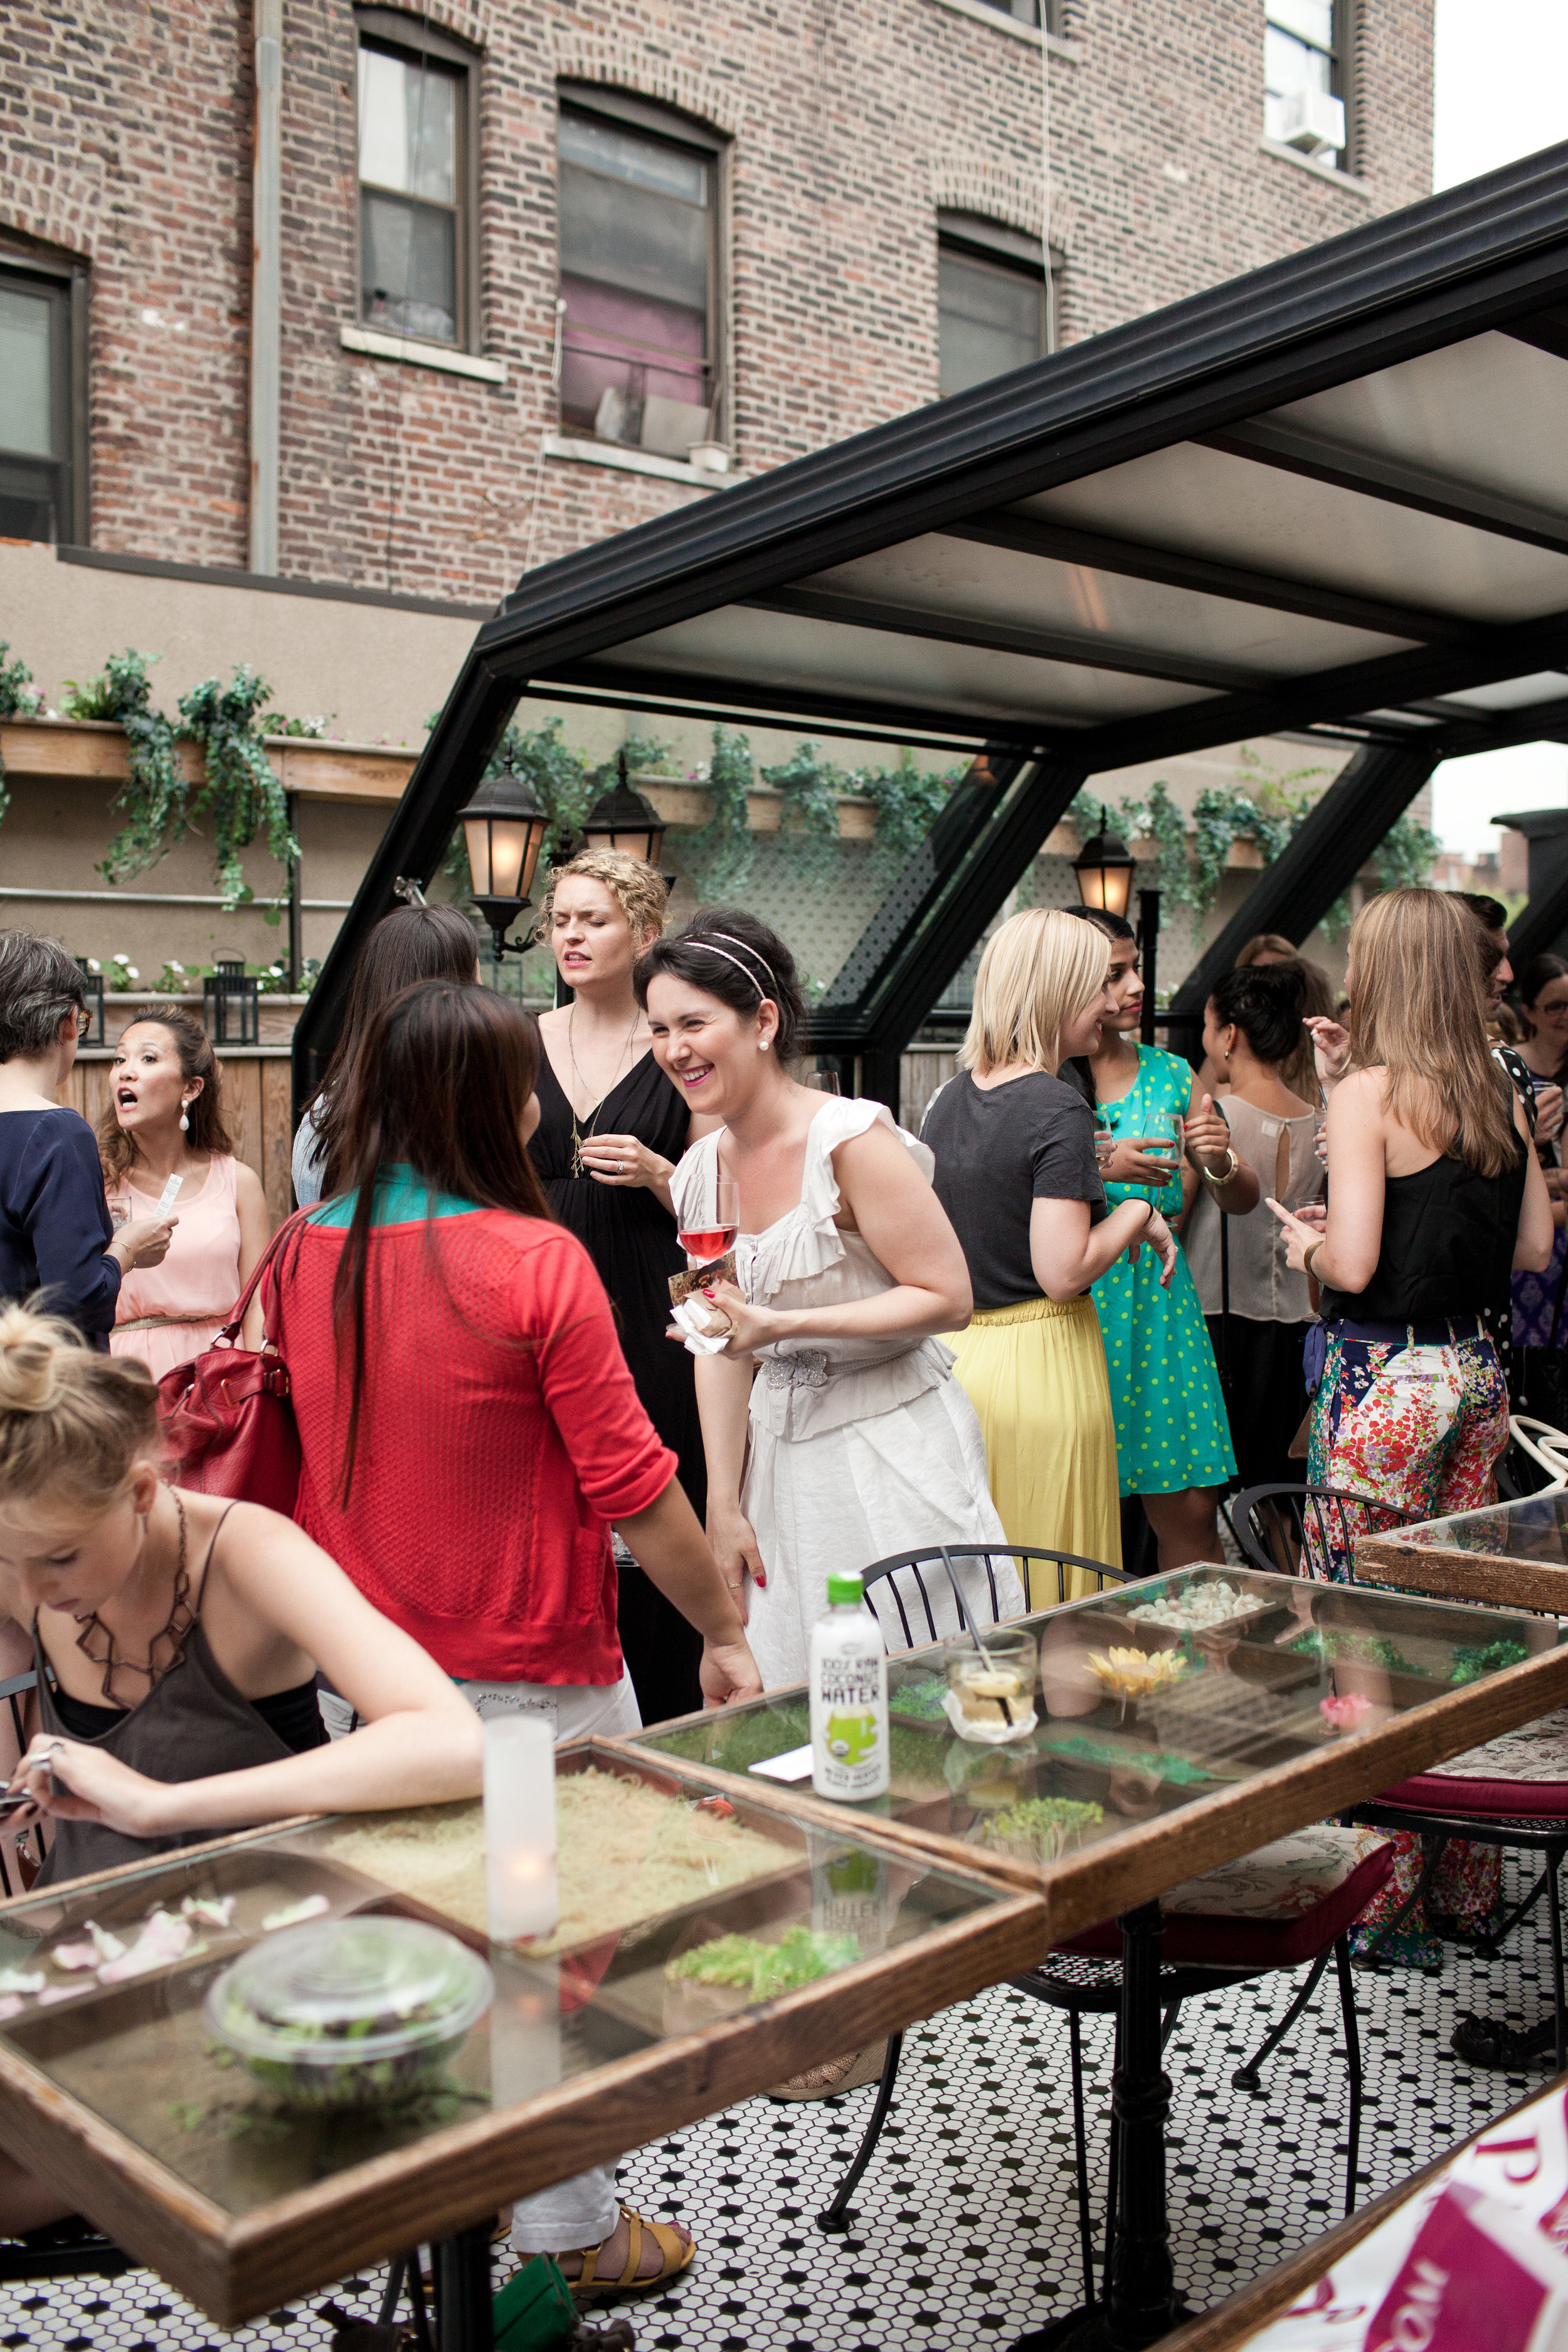 20130626_entwined_162.jpg